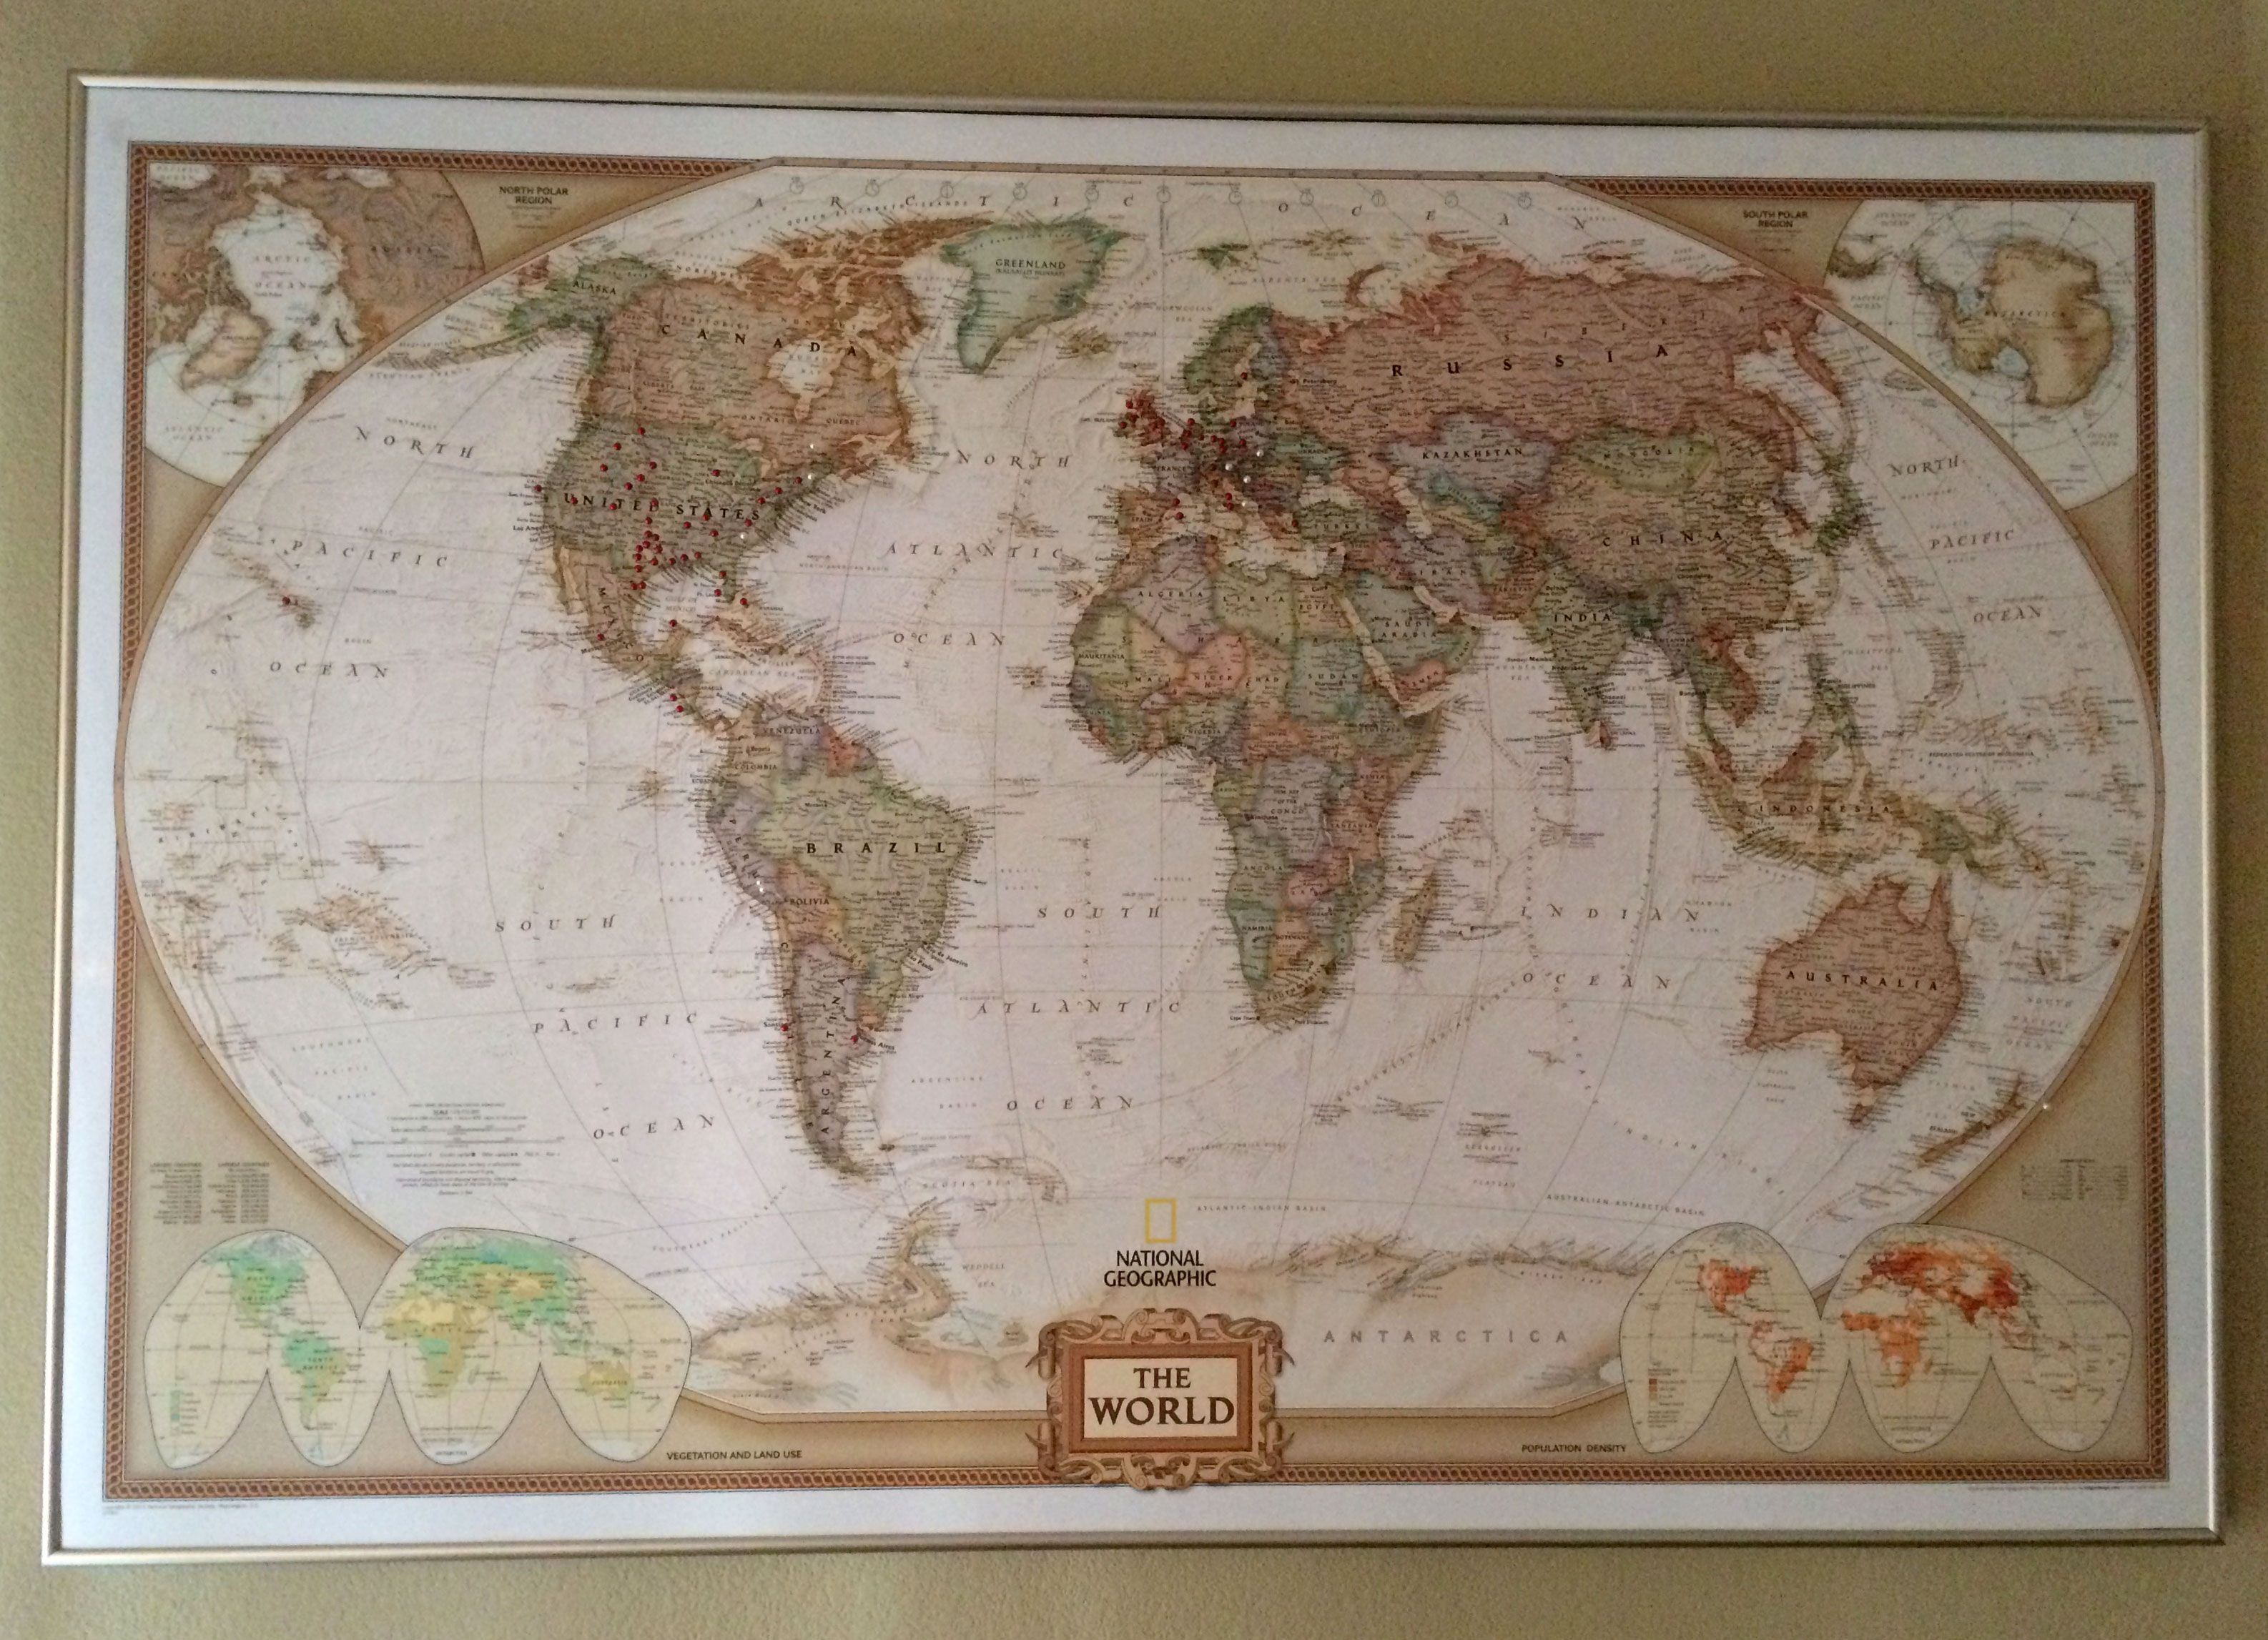 Pin by brandon bazar on random projects pinterest world executive poster size and tubed national geographic reference map dimensions satisfaction ensured design is stylish and innovative gumiabroncs Image collections